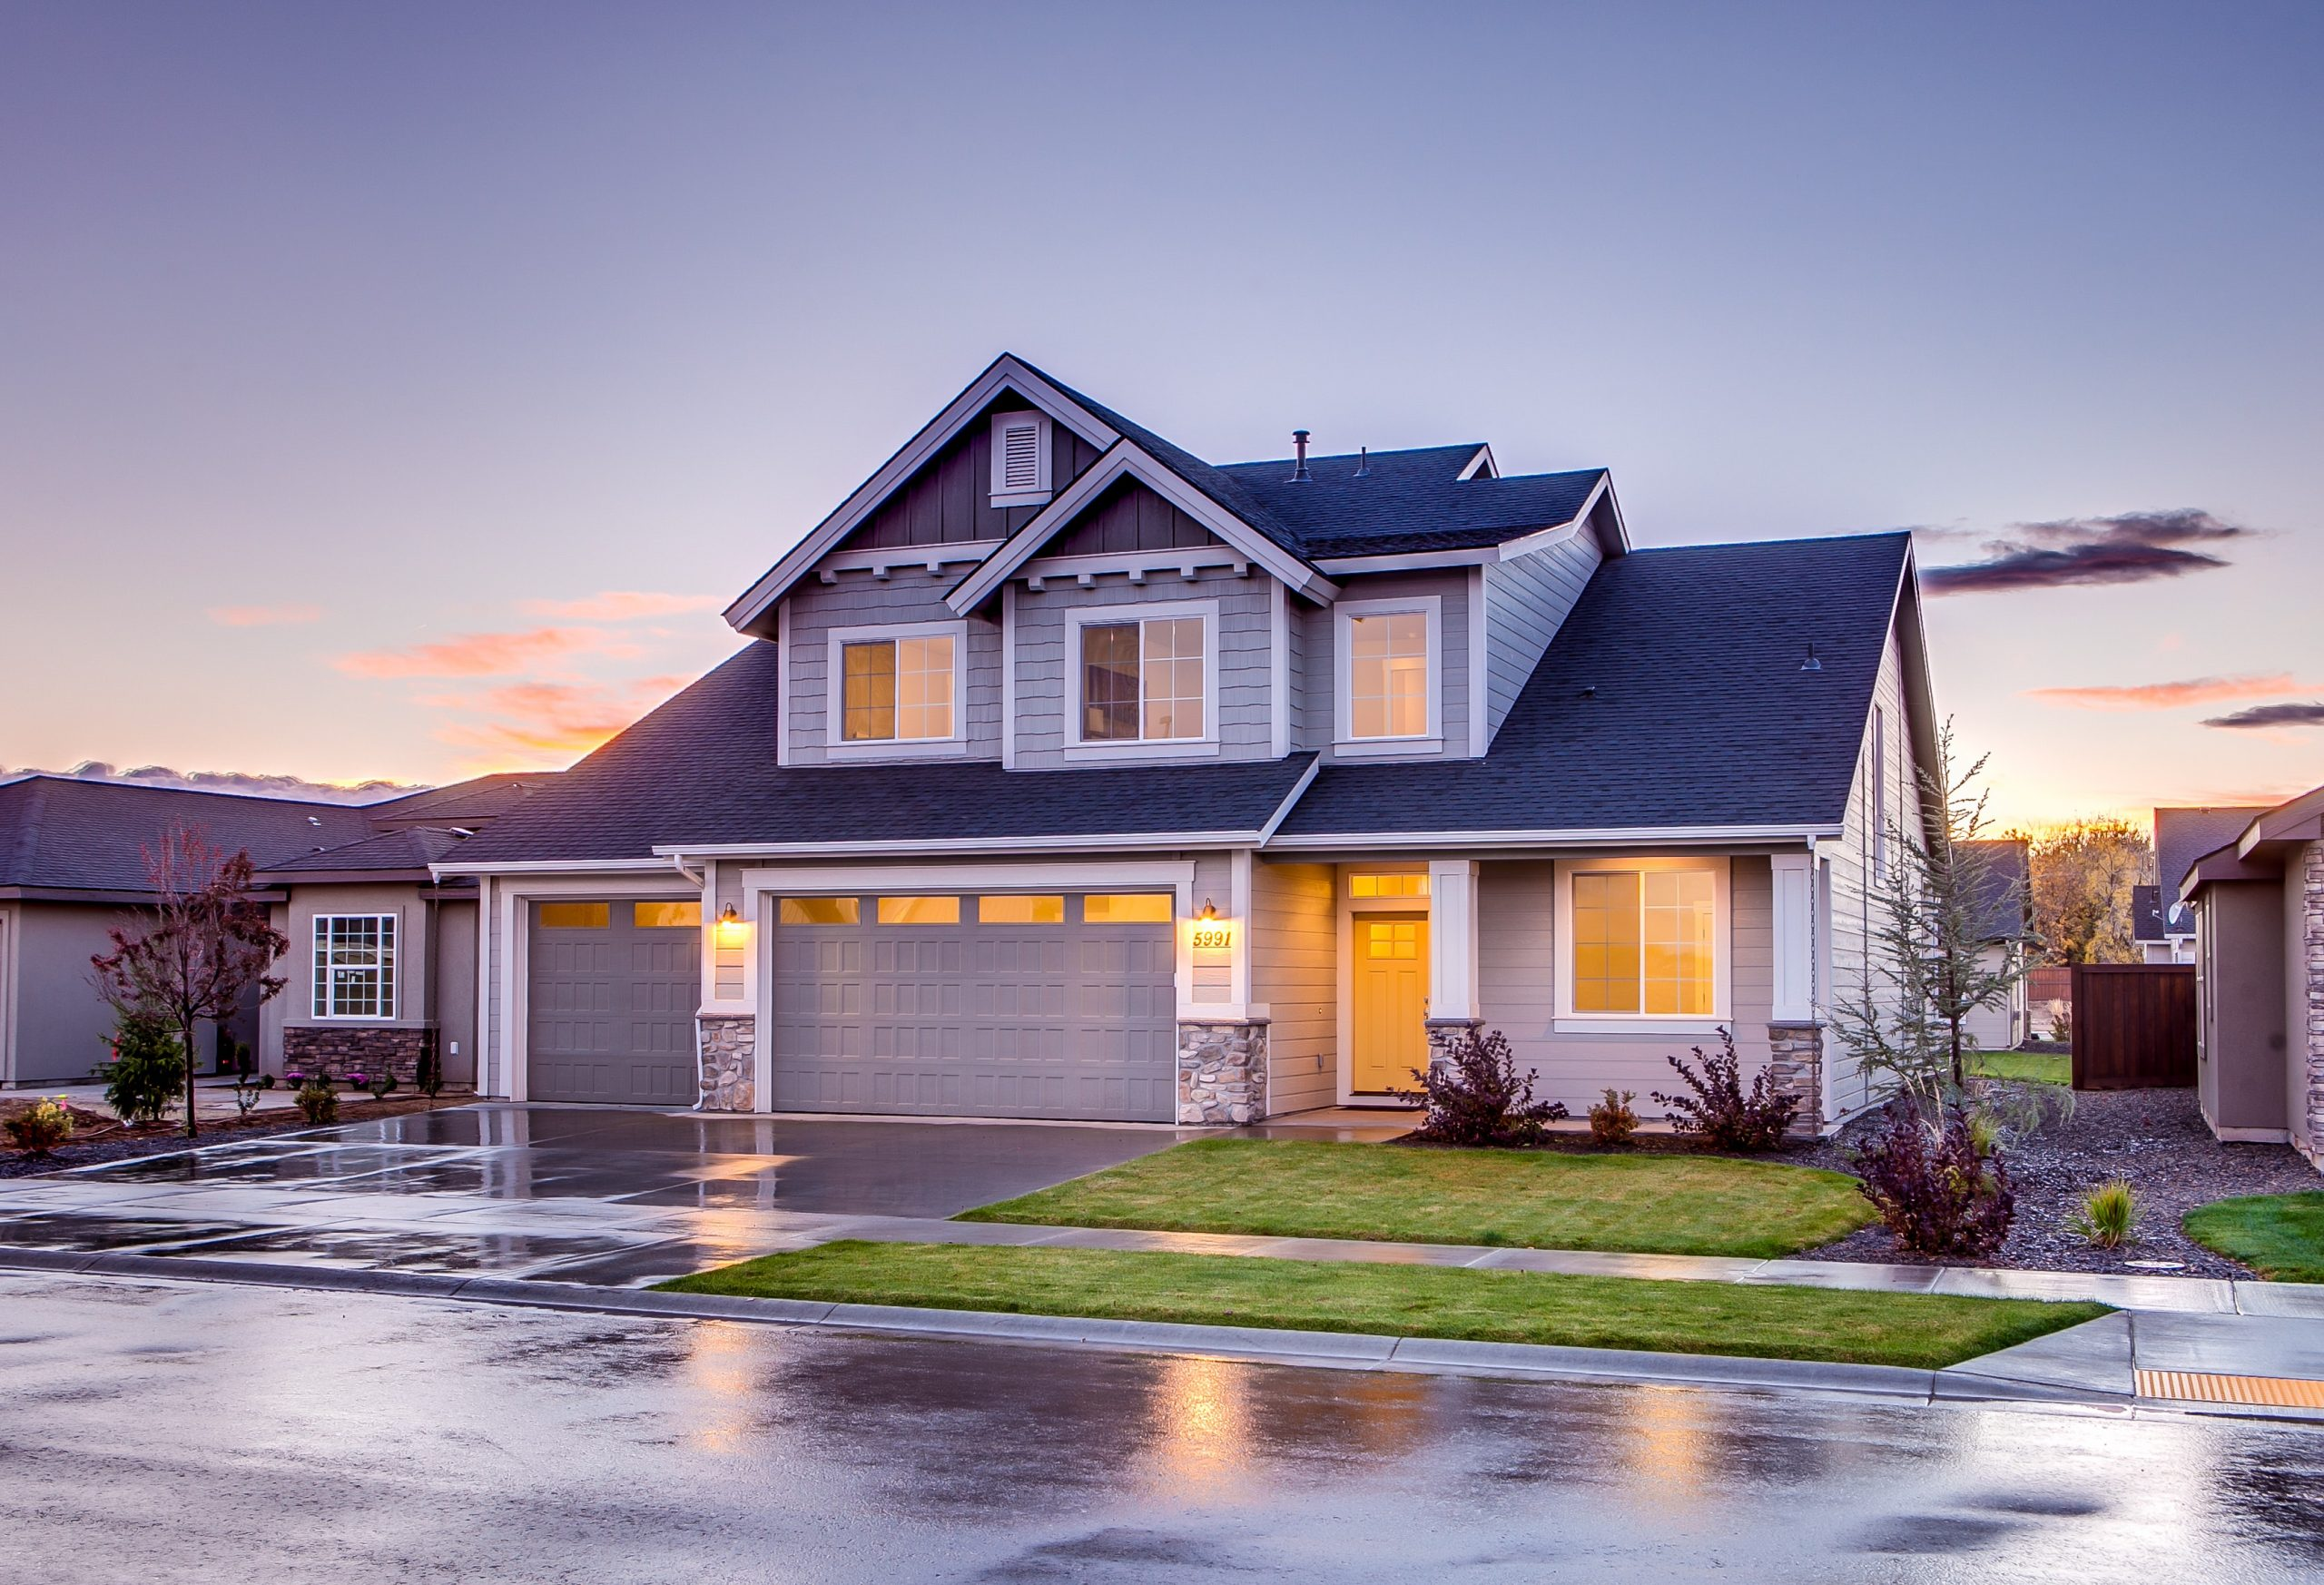 4 Tips to Instantly Raise Your Home's Aesthetics